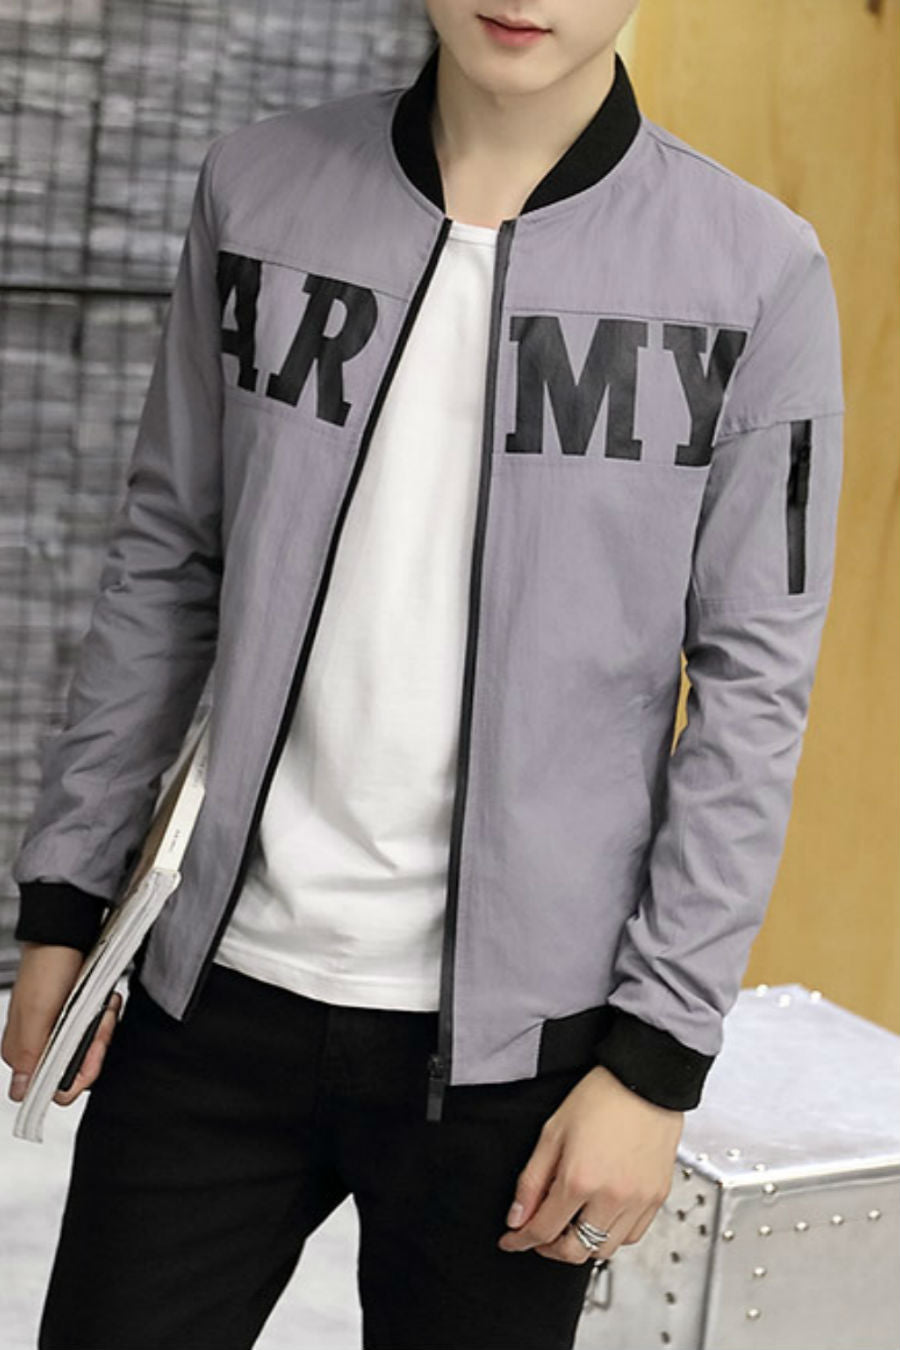 Gray Jacket With Army Print